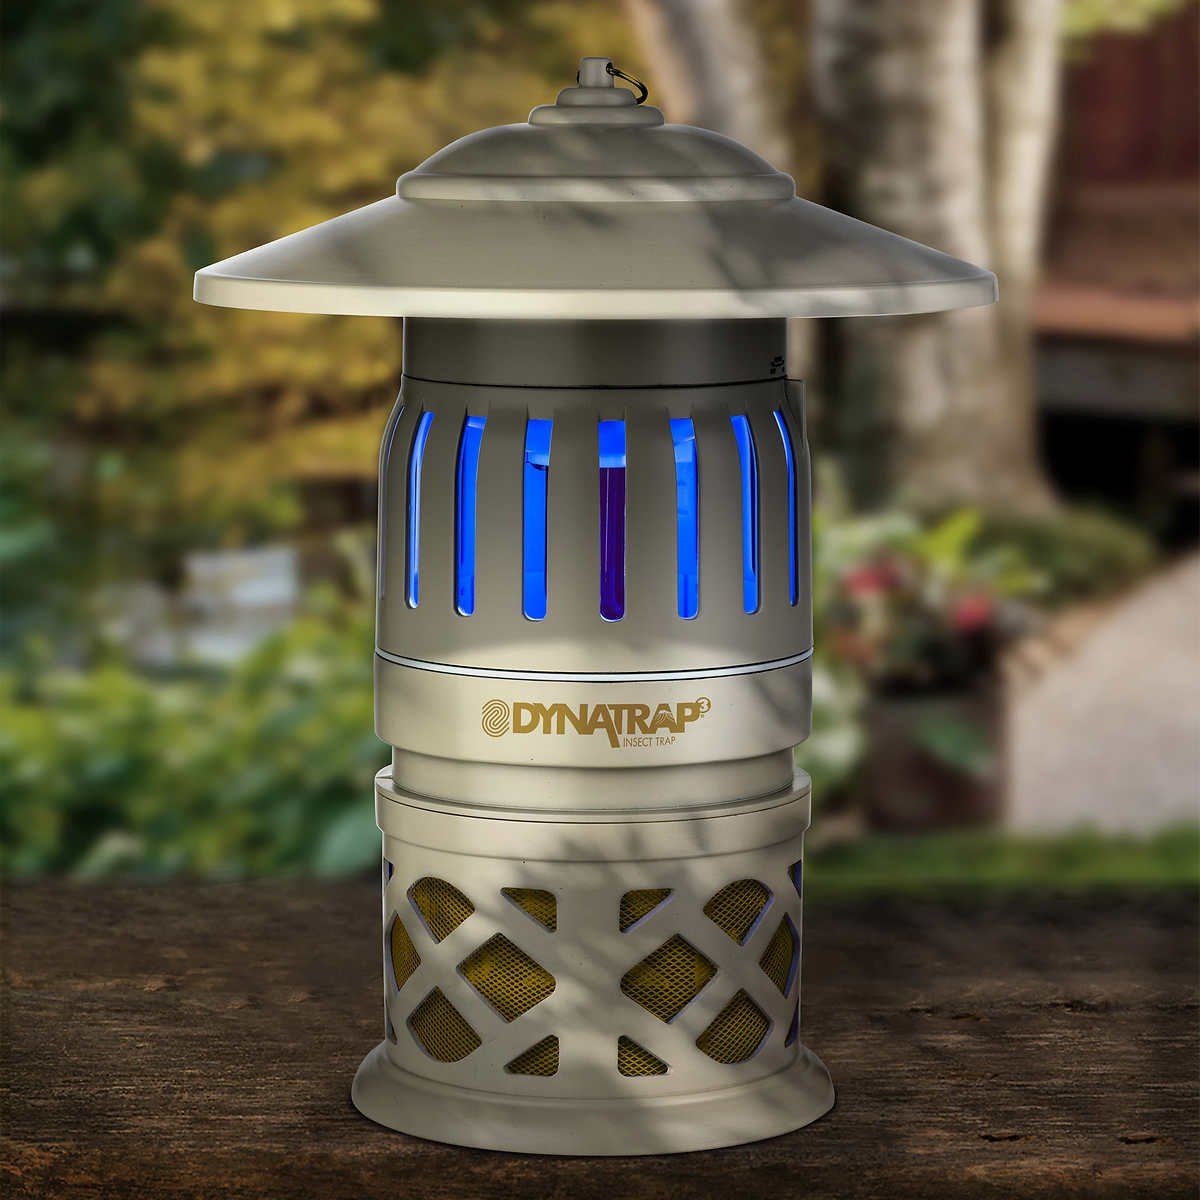 DynaTrap 3-Way Protection, Twist On/Off Insect Trap, 1/2 Acre Coverage